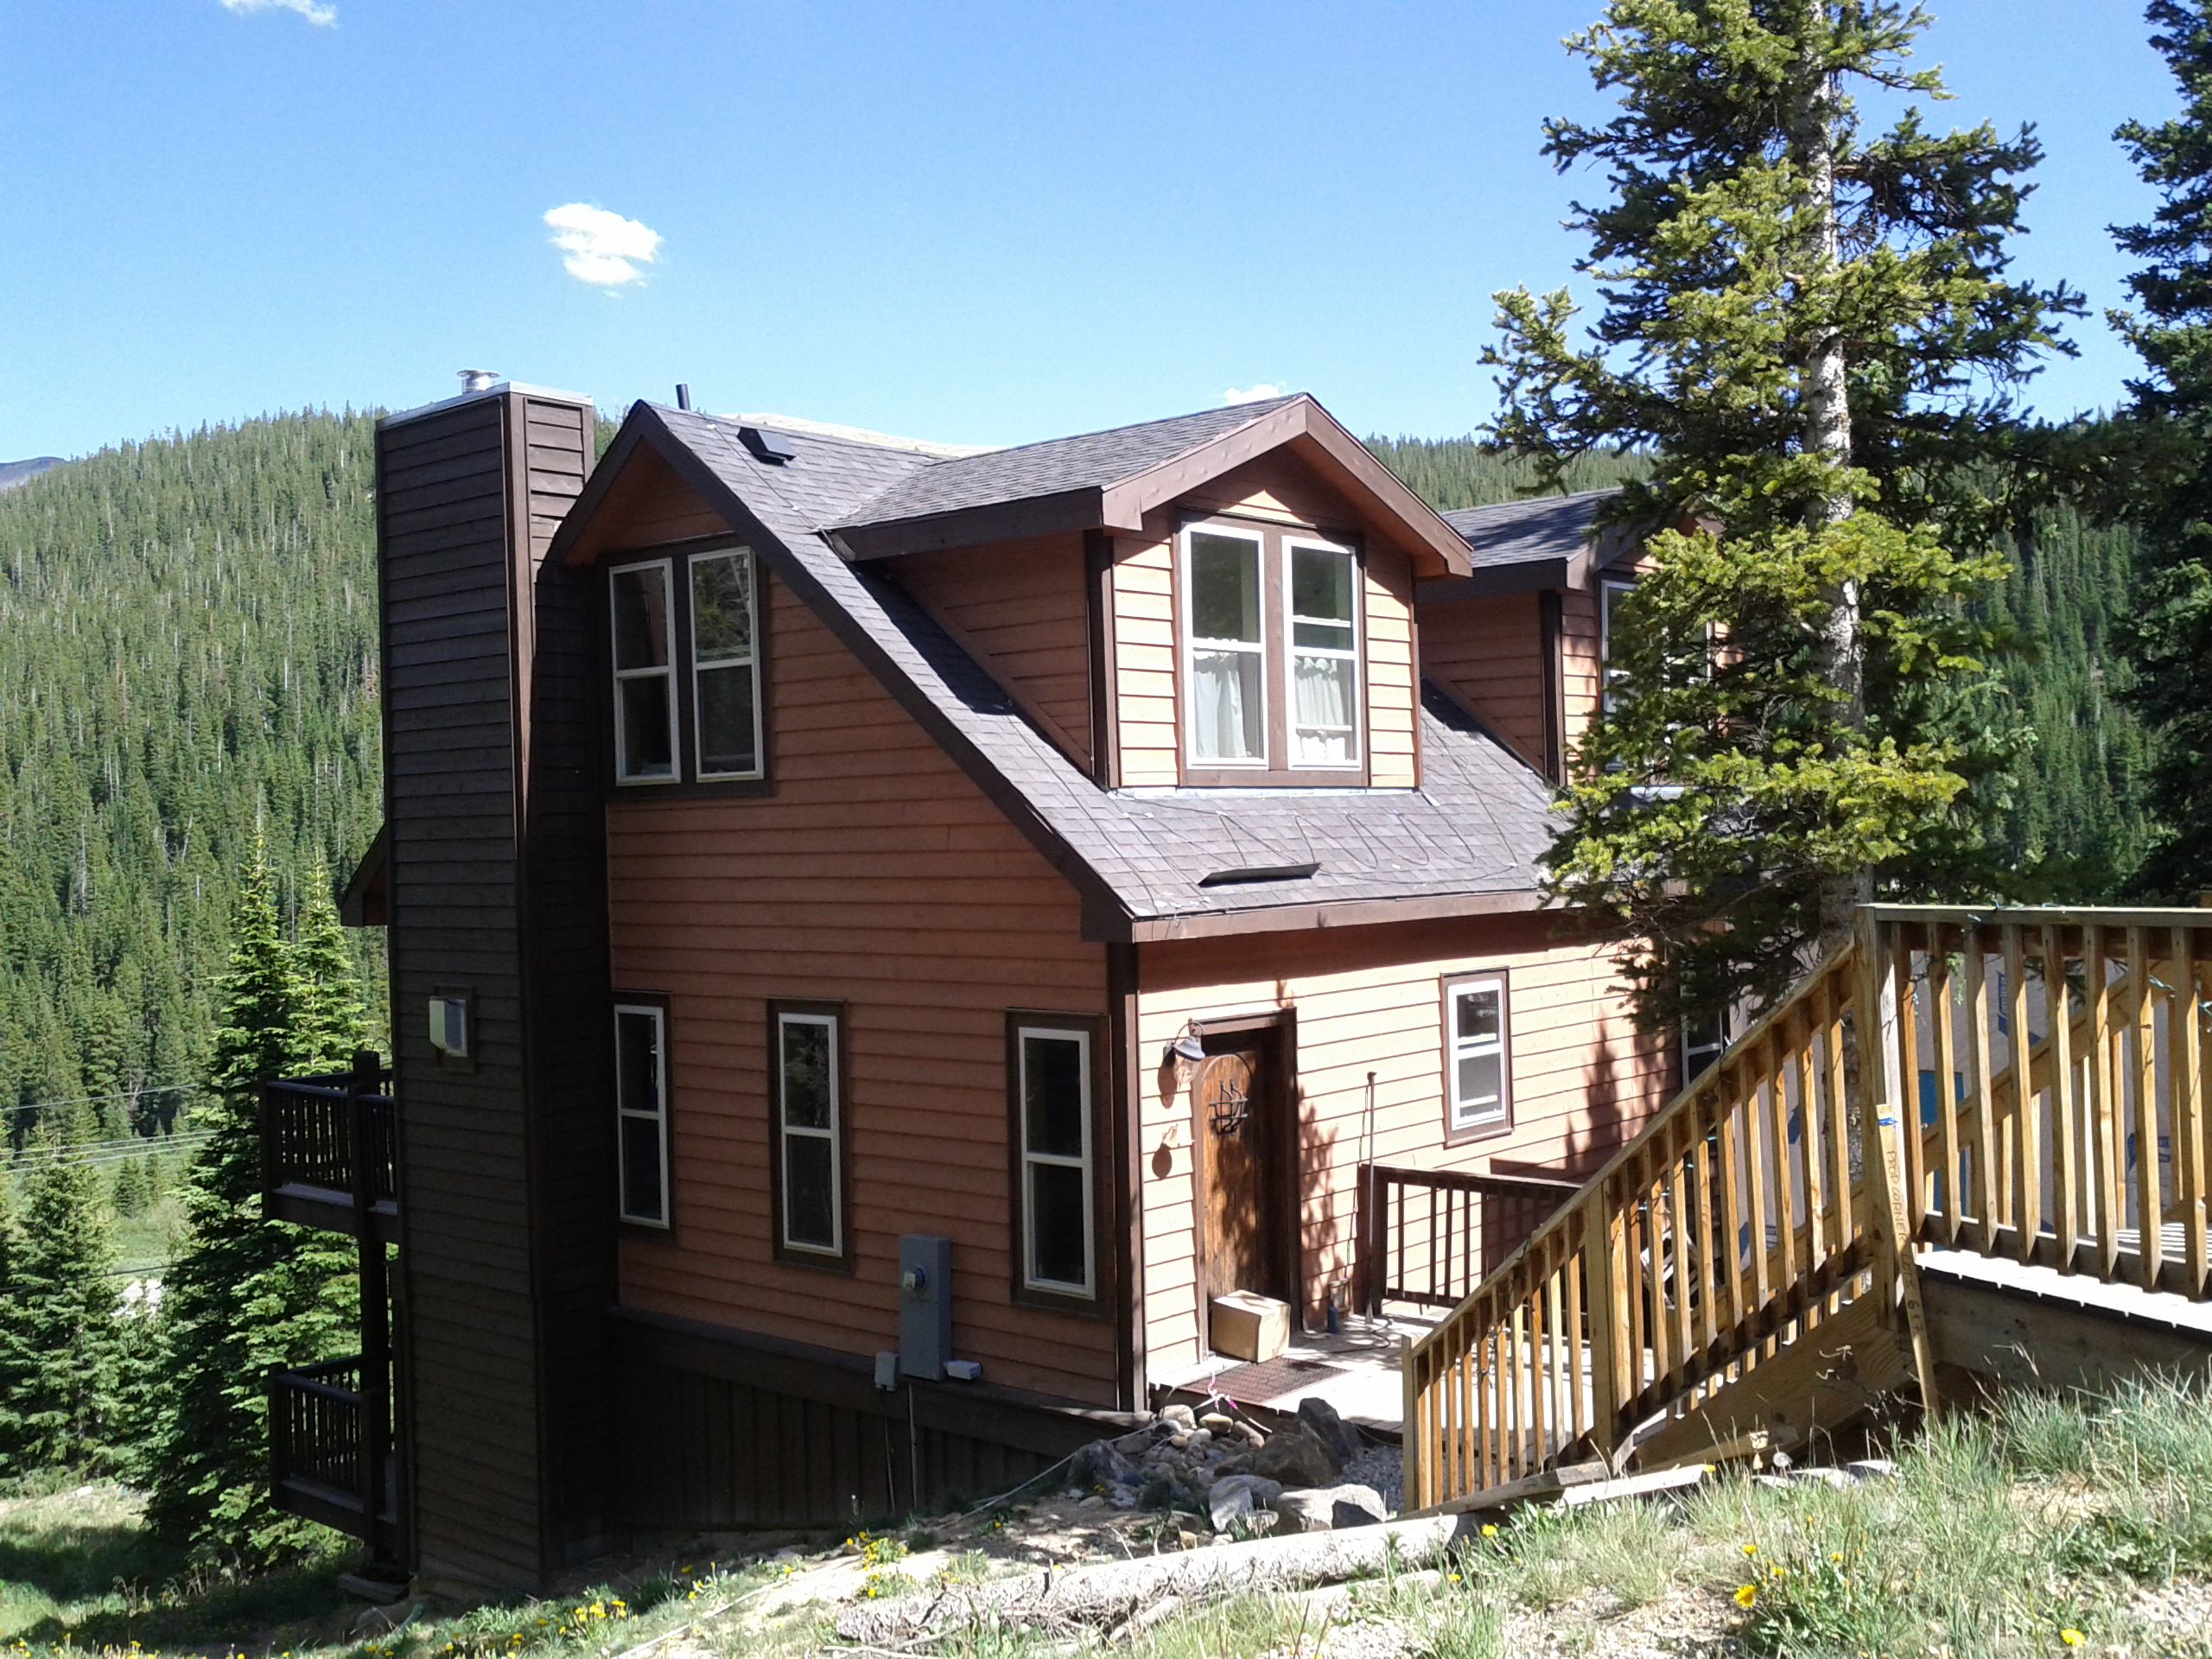 breckenridge year all cabins in denver happy long district be good arts taste